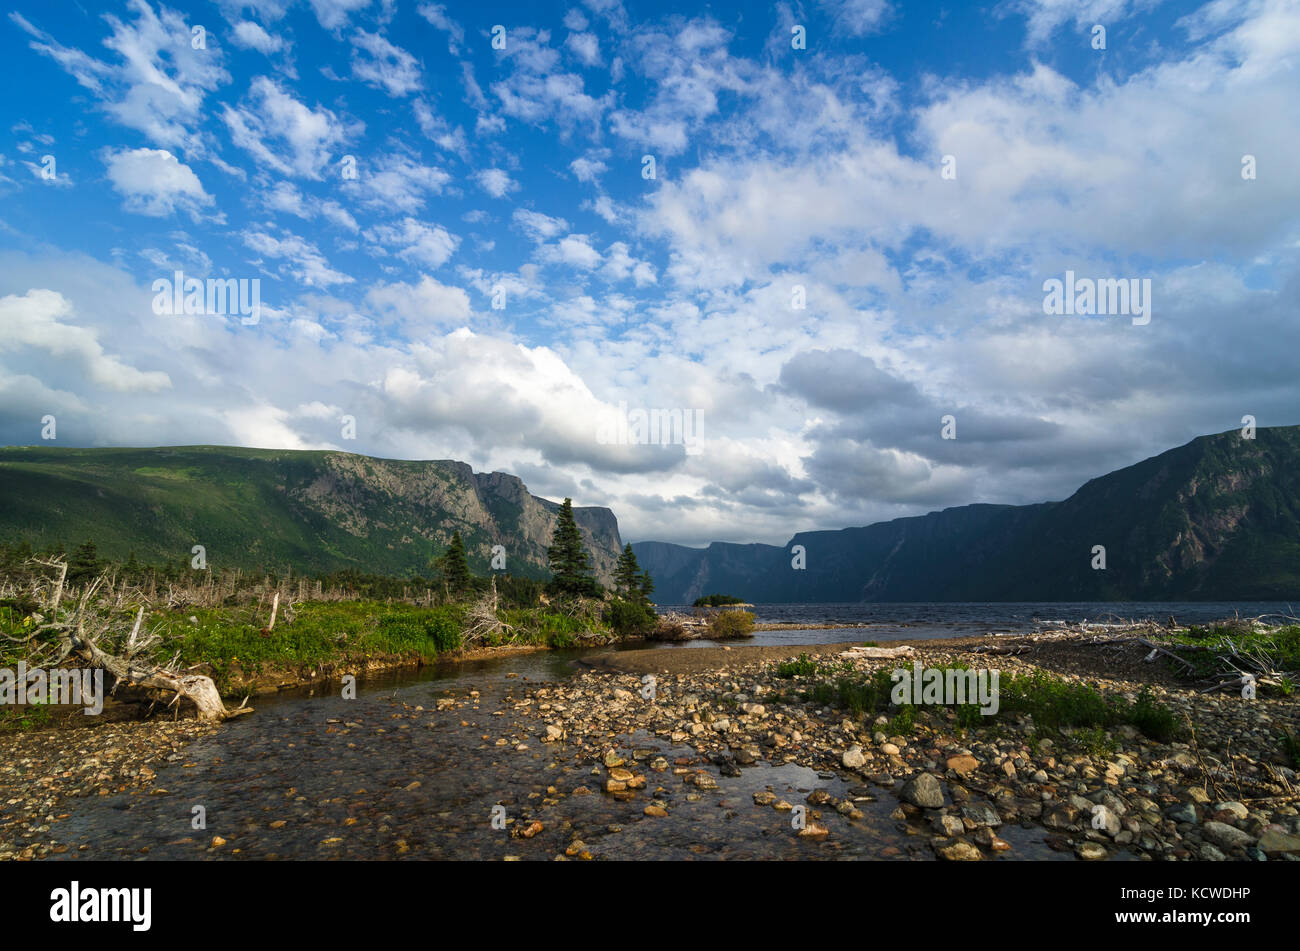 Snug Harbour Trail, Western Brook Pond, Gros Morne National Park, UNESCO World Heritage Site, Newfoundland, Canada - Stock Image